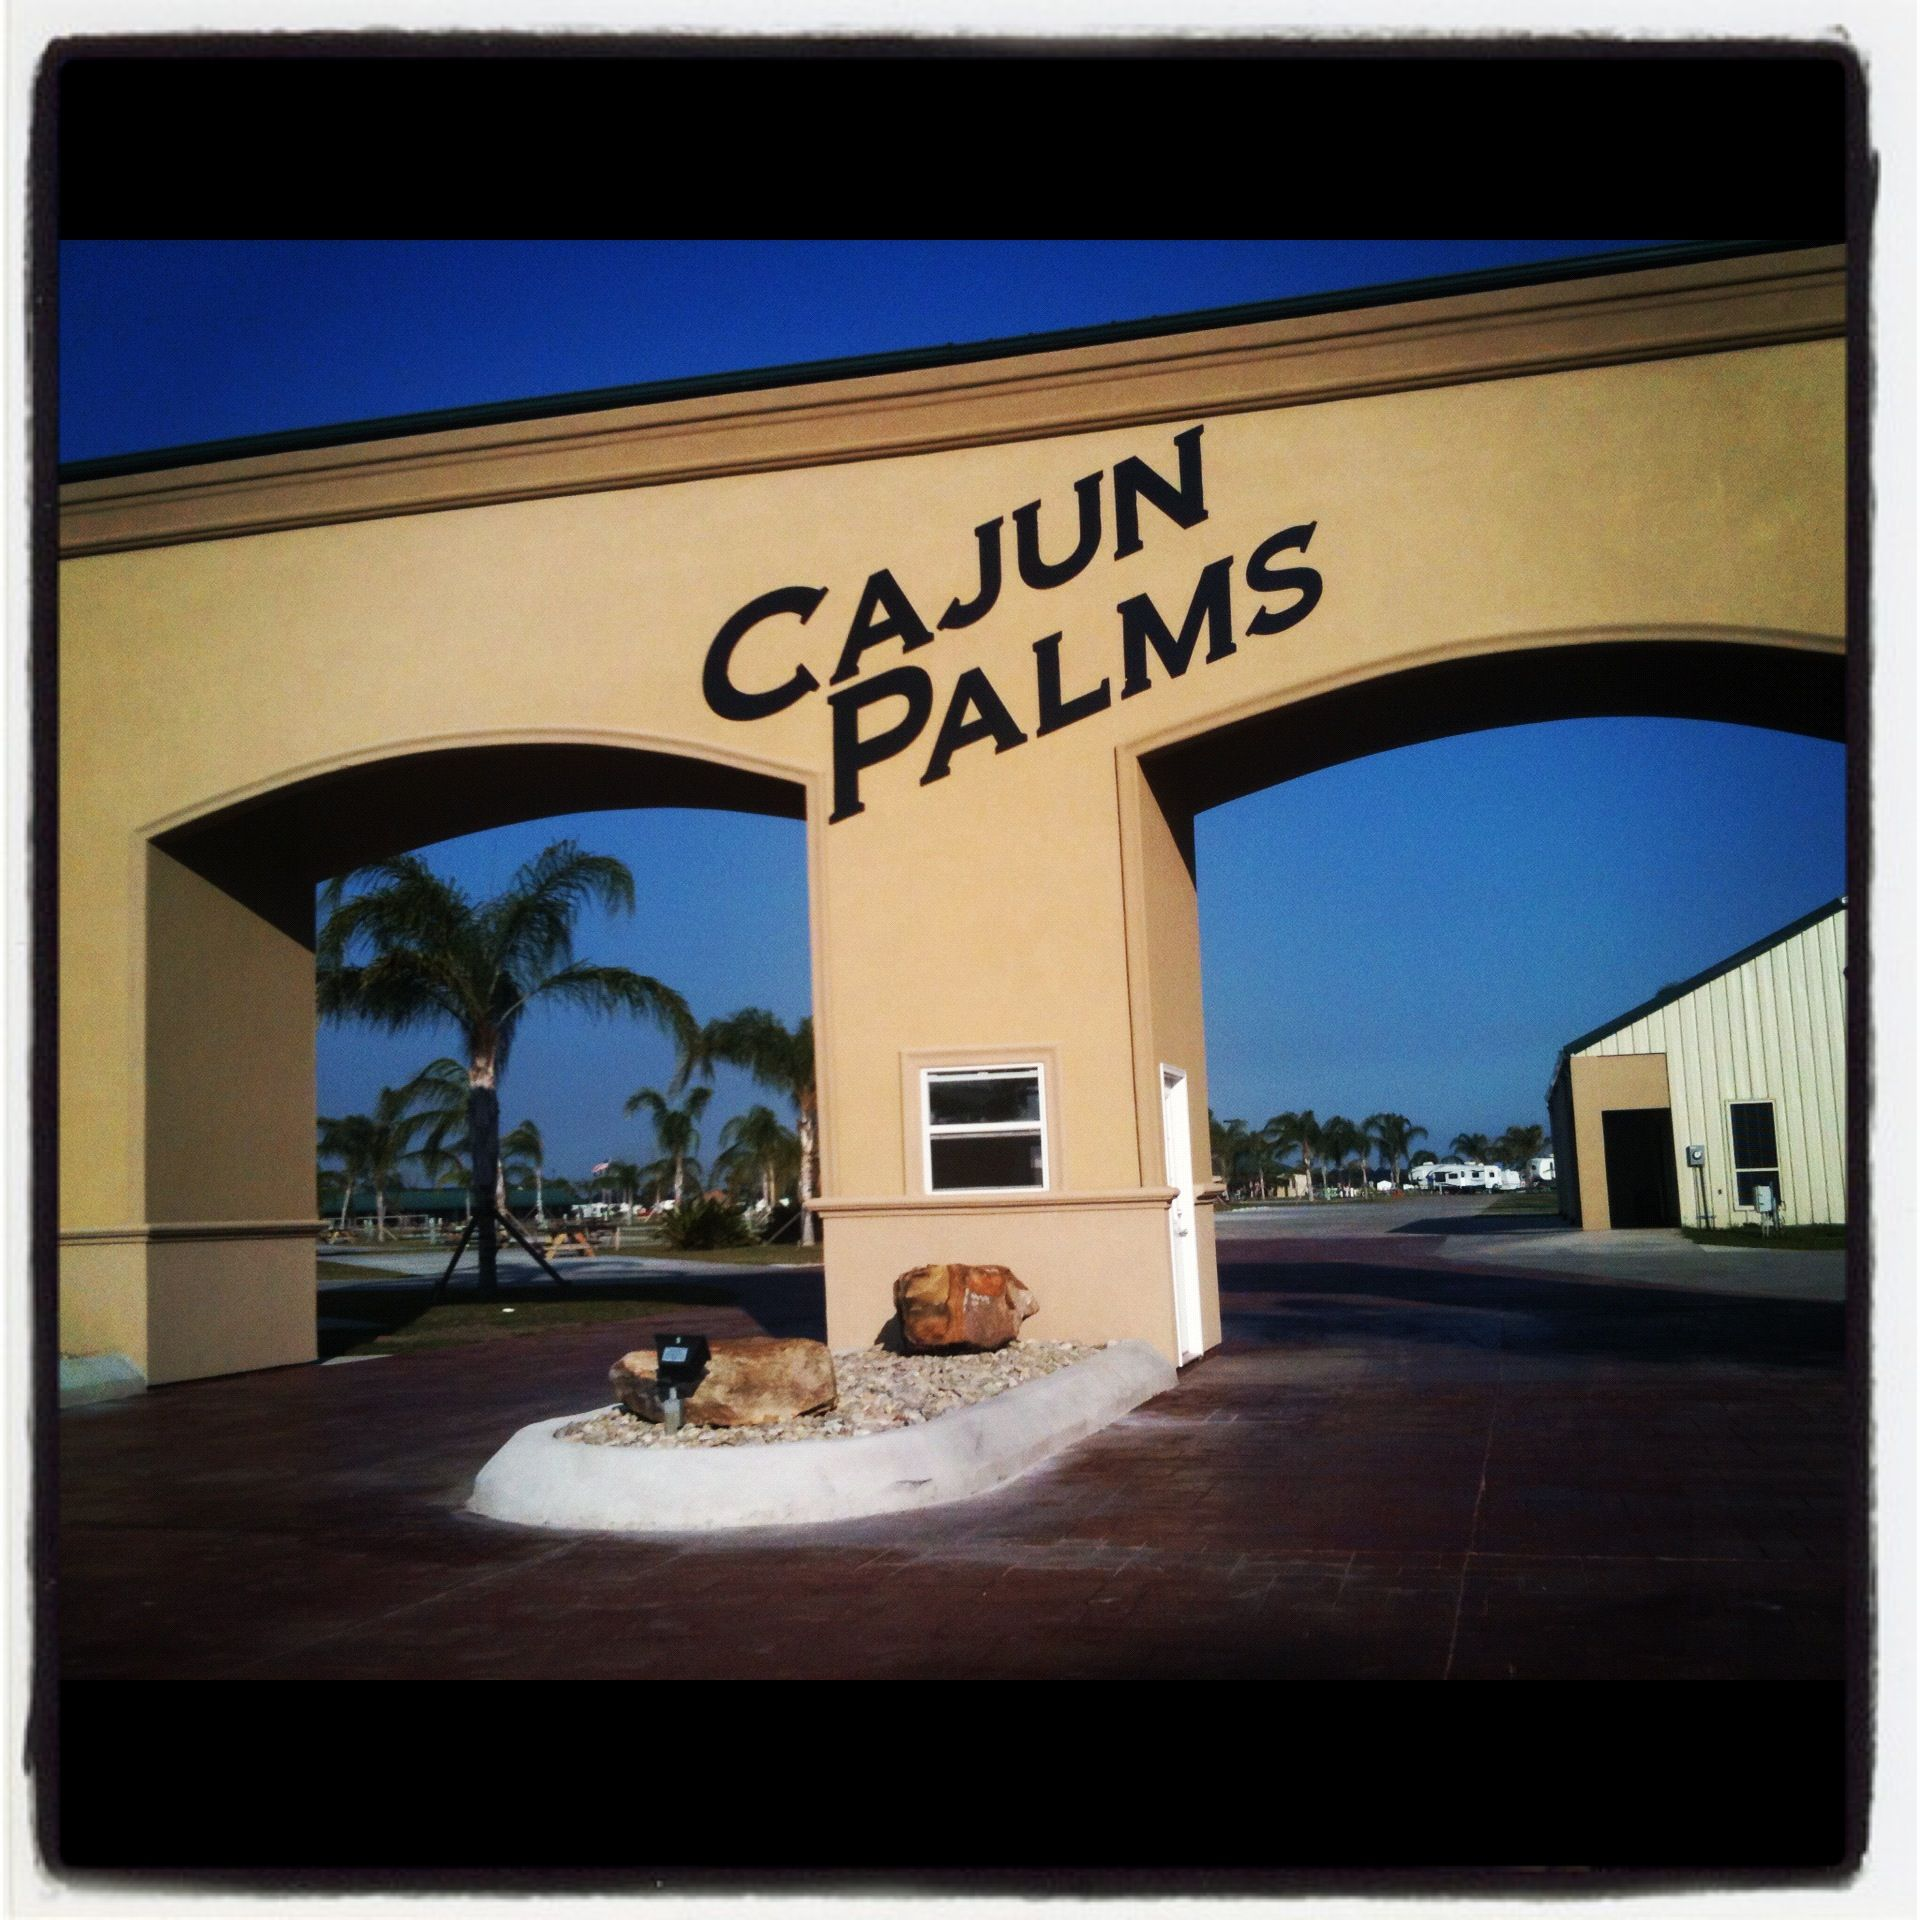 Cajun Palms Rv Resort One Of My Favorite Places To Camp